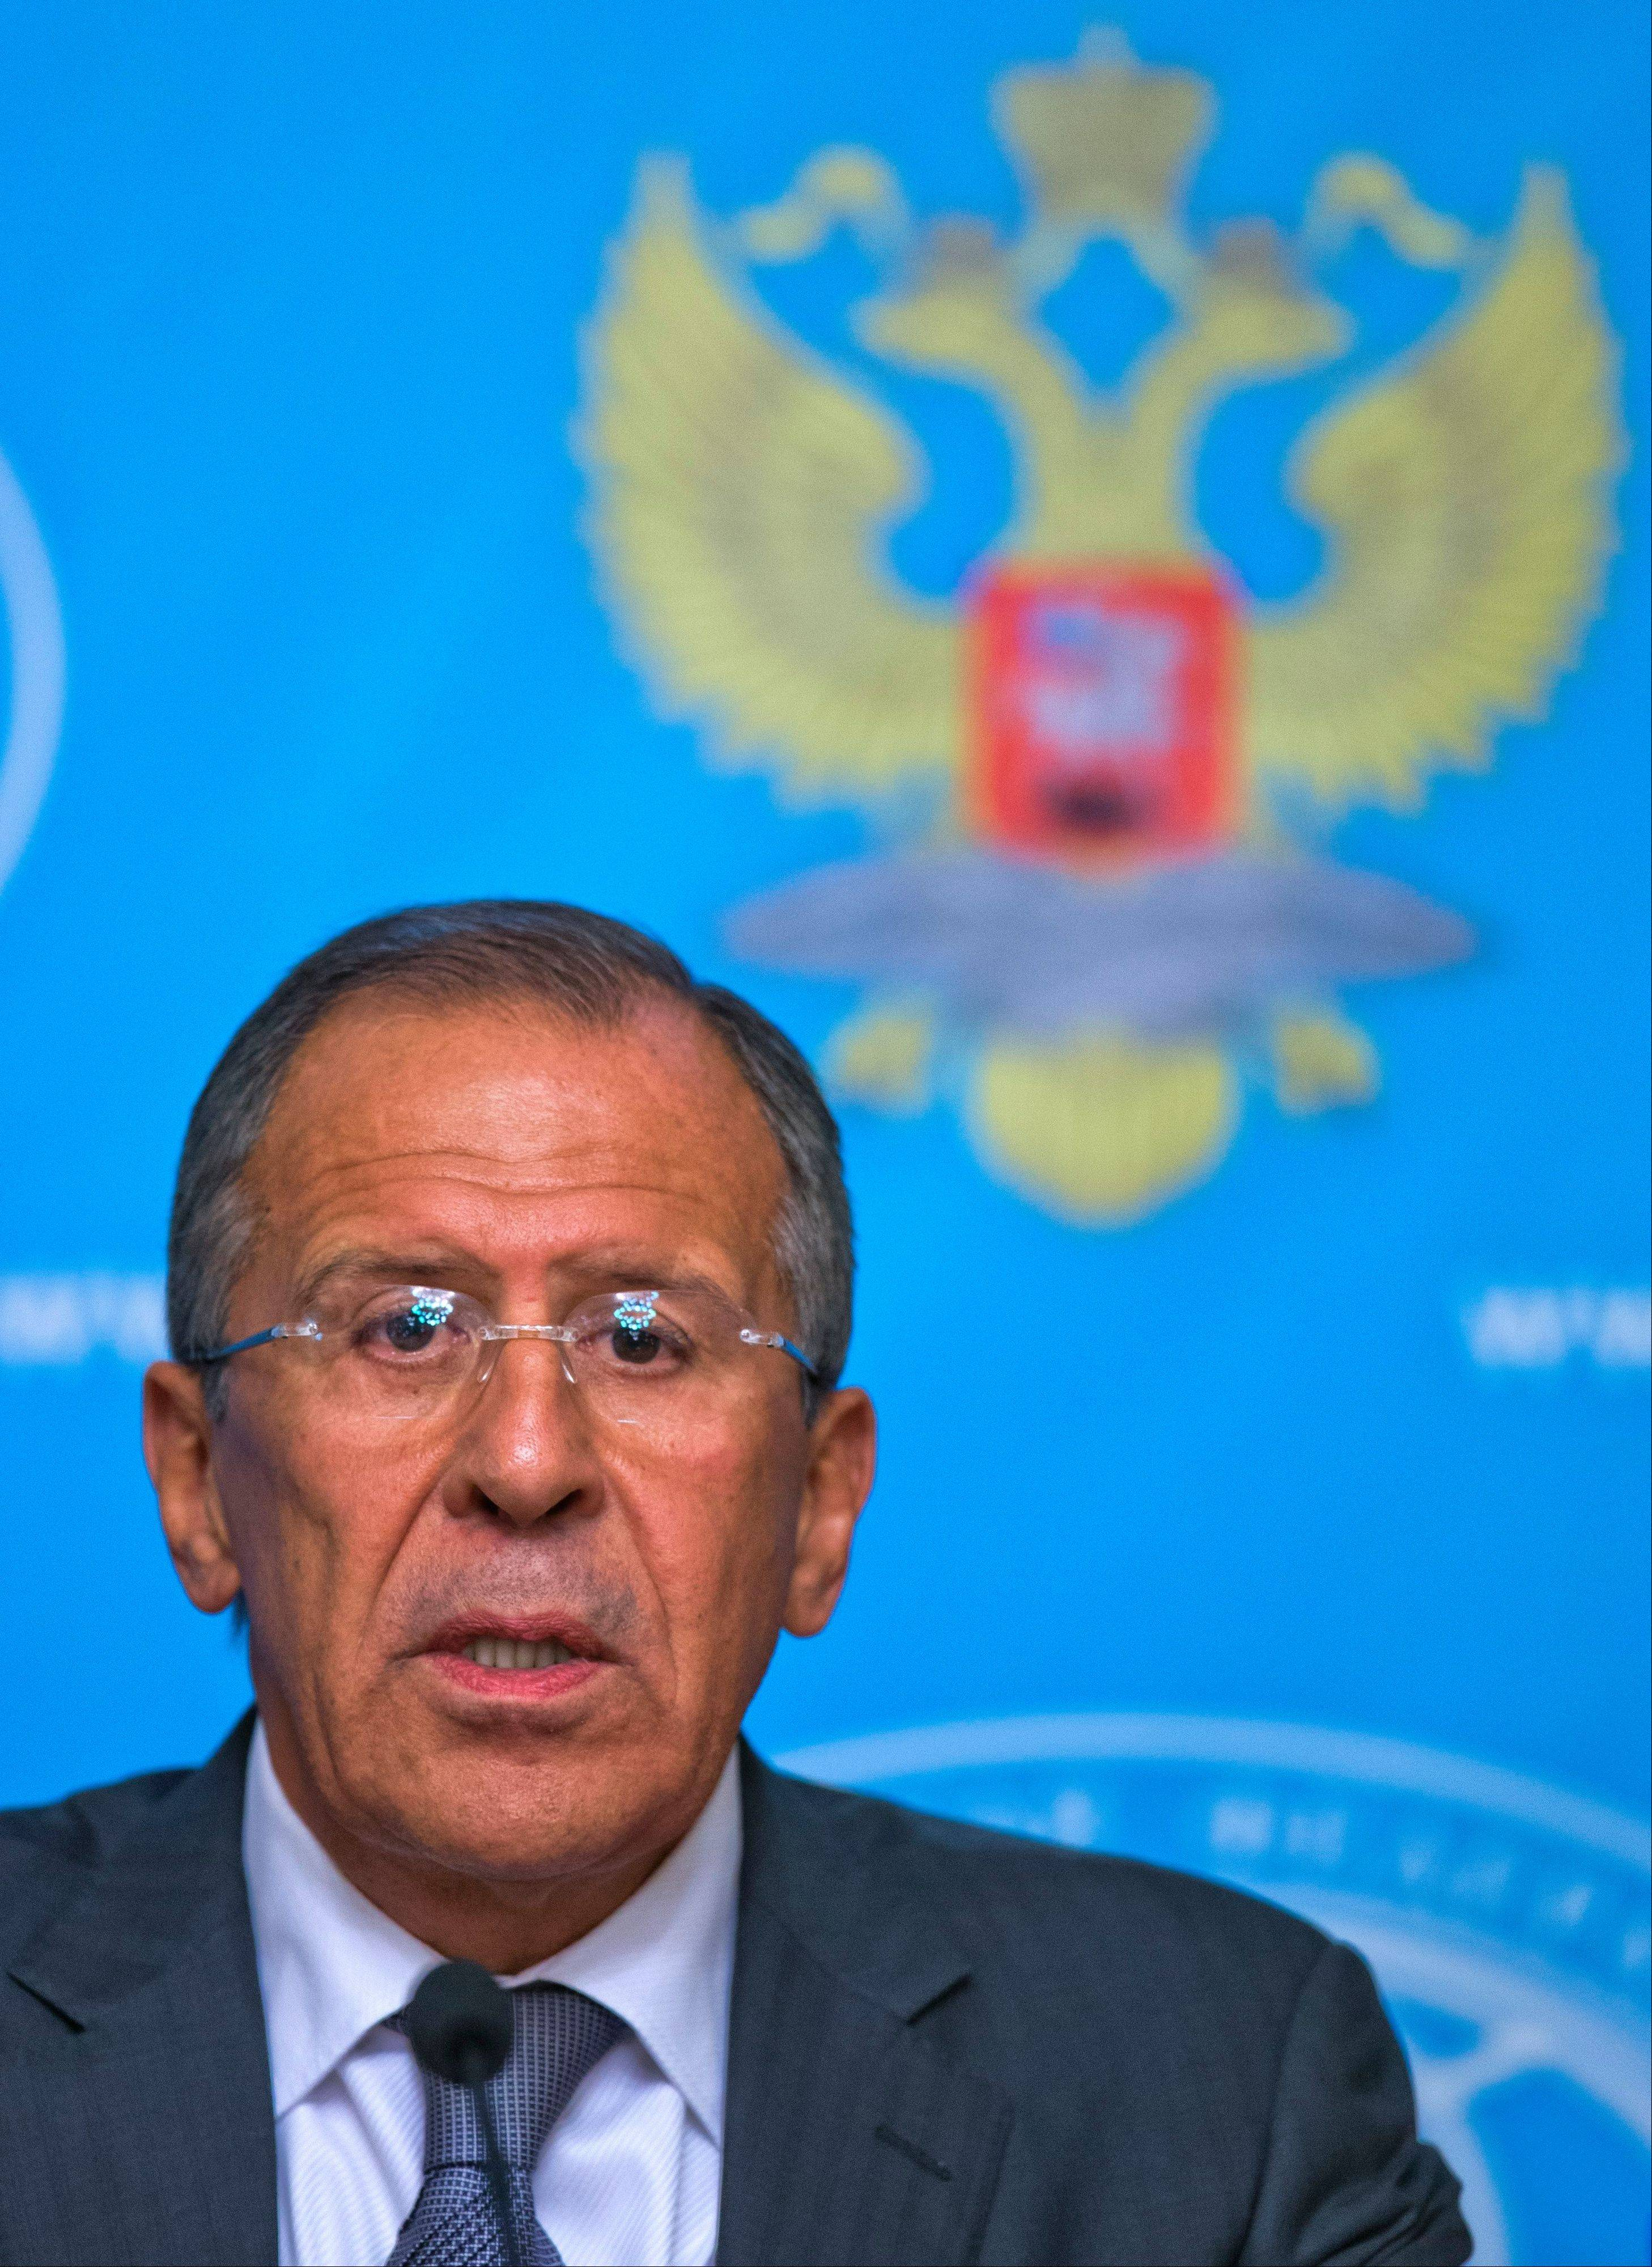 Russian Foreign Minister Sergey Lavrov speaks Monday at a news conference in Moscow. The Russian Foreign Minister says Moscow will push Syria to place its chemical weapons under international control. Sergey Lavrov said Monday that if such a move would help avert a possible U.S. strike on Syria, Russia will start work �immediately� to persuade Syria to relinquish control over its chemical arsenals.